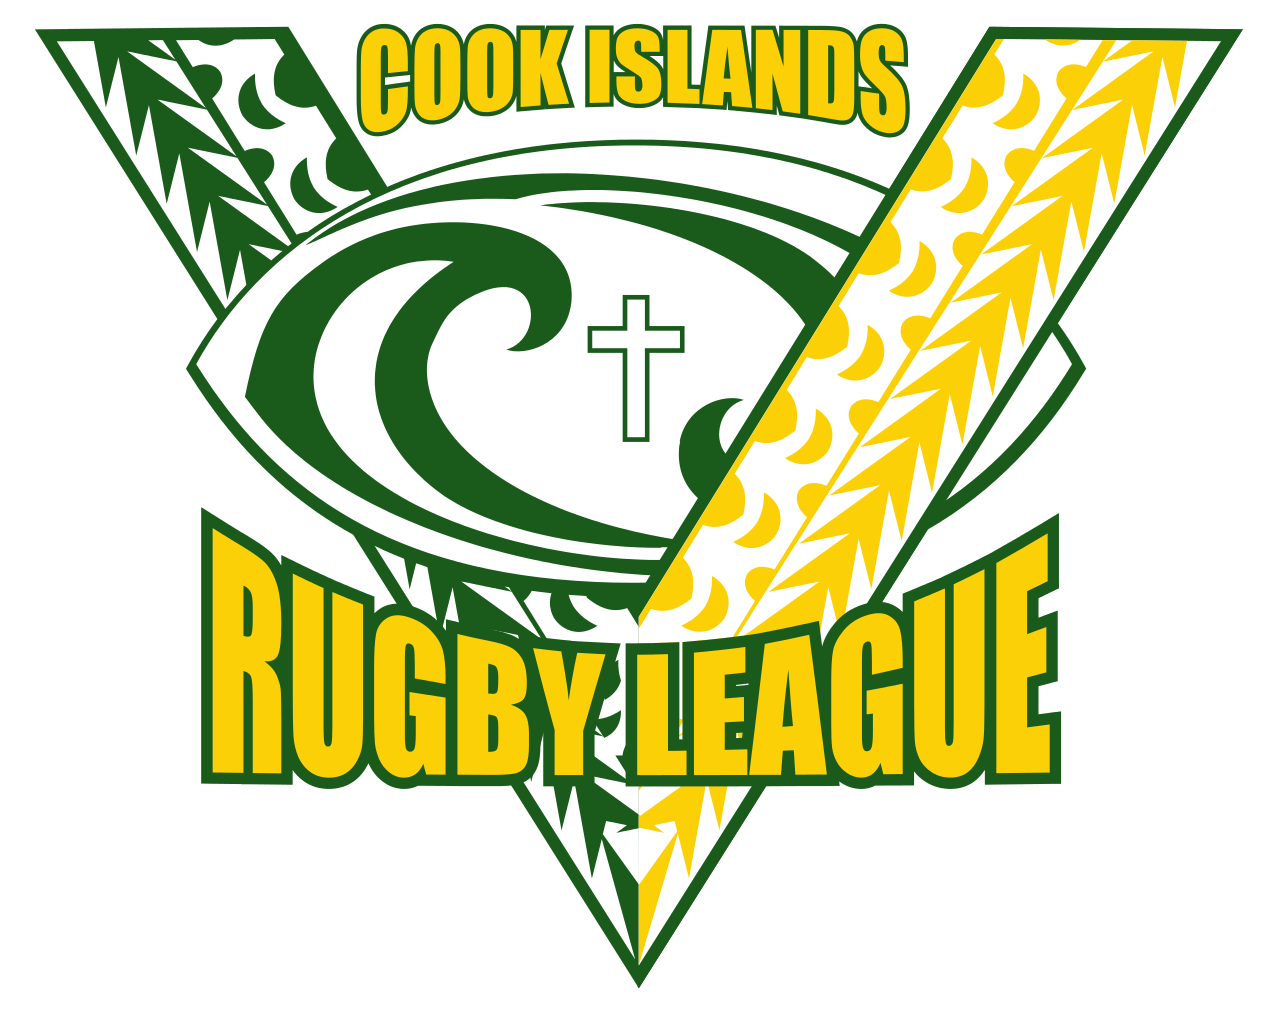 1280pxCook_Islands_Rugby_League_logo.svg.png (1280×1024